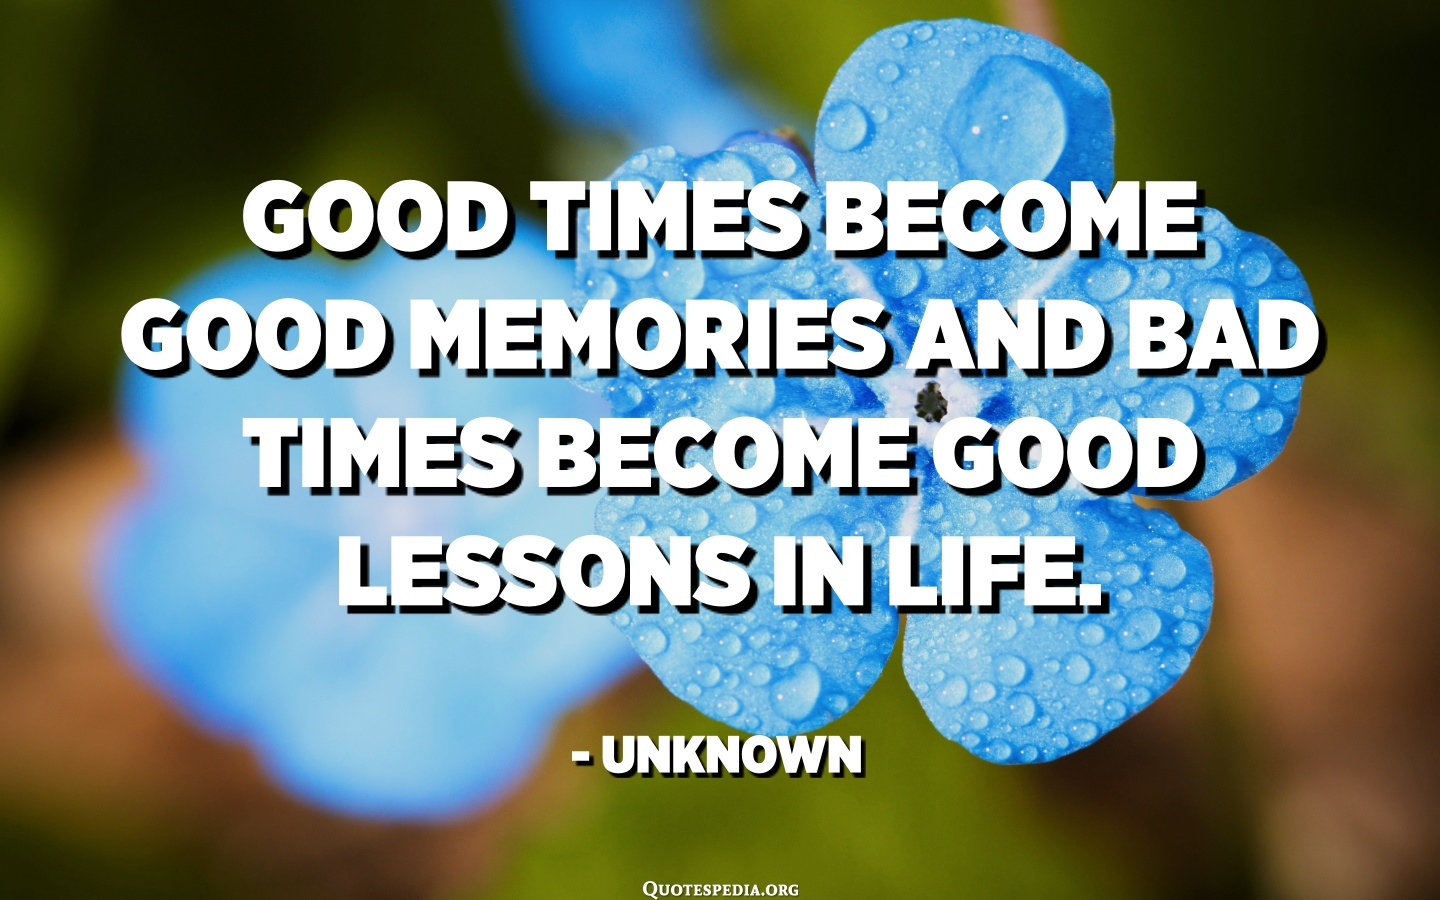 Good times become good memories and bad times become good lessons in life.  - Unknown - Quotes Pedia